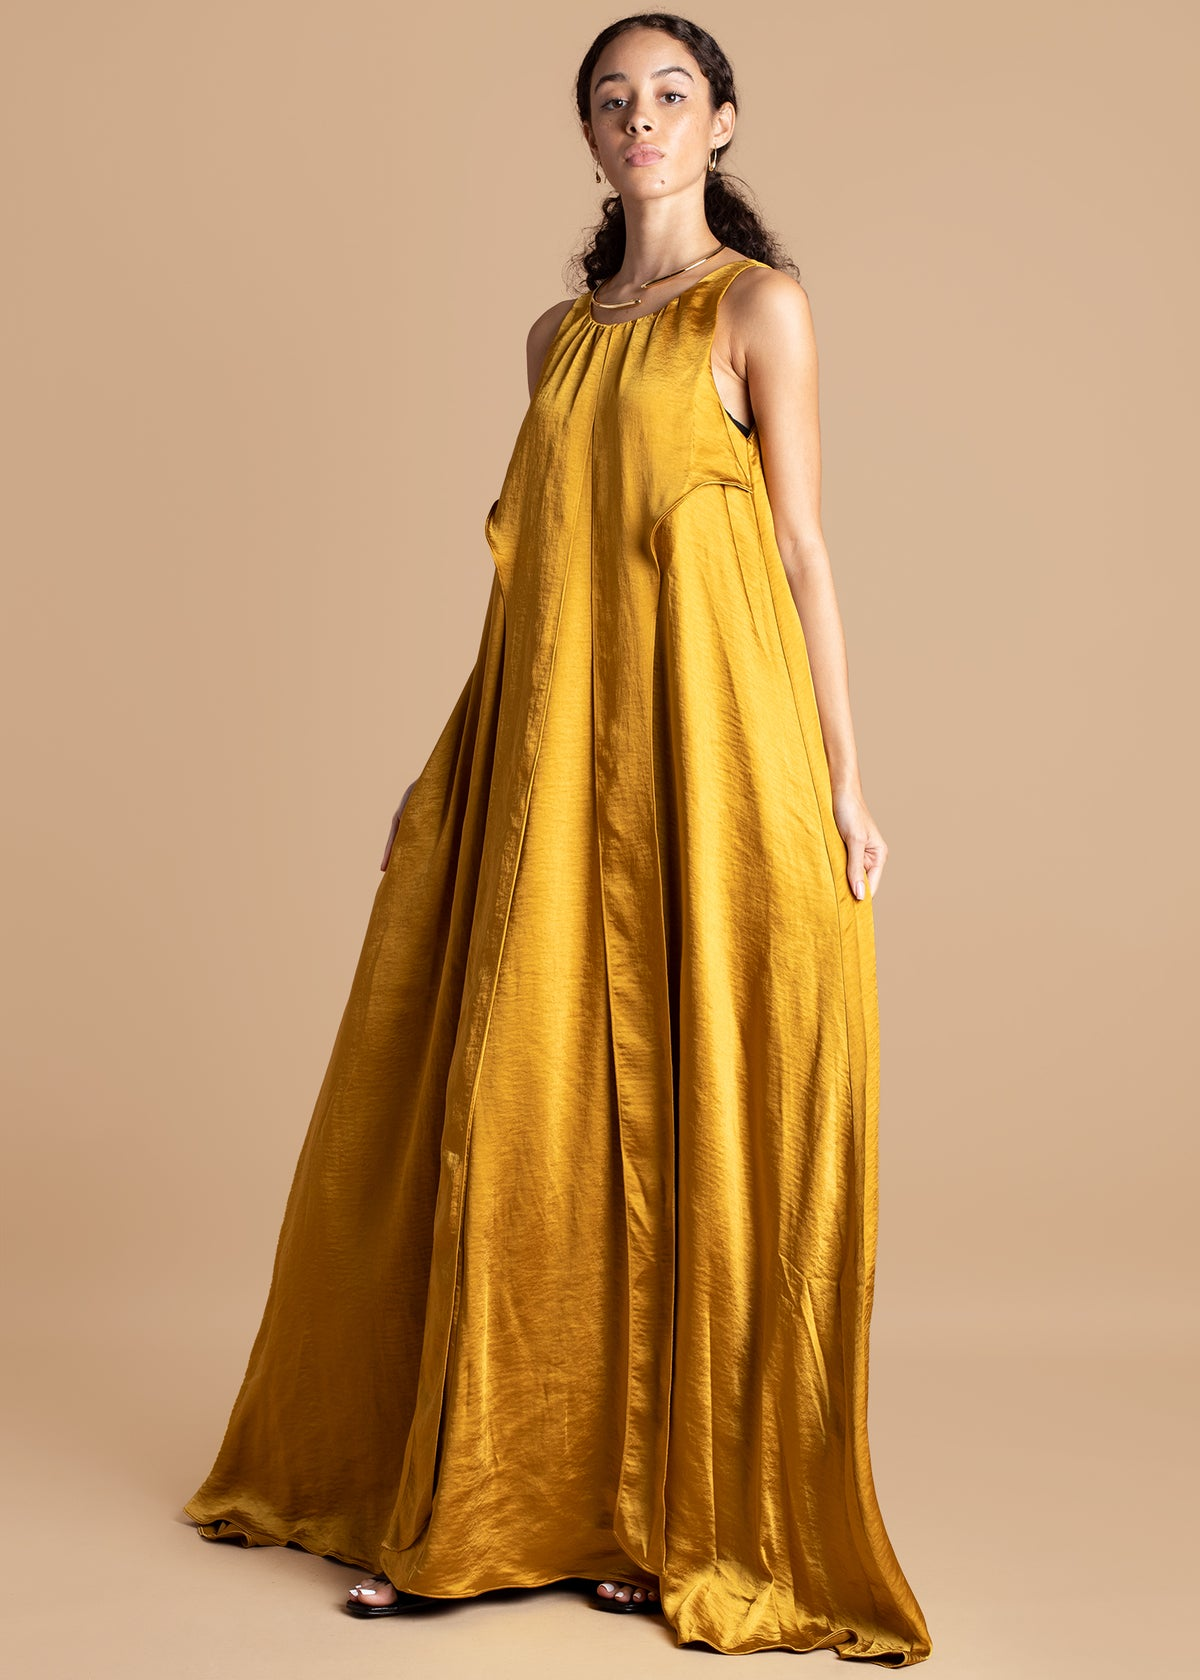 Andrea Iyamah Mustard Satin Full Length Dress